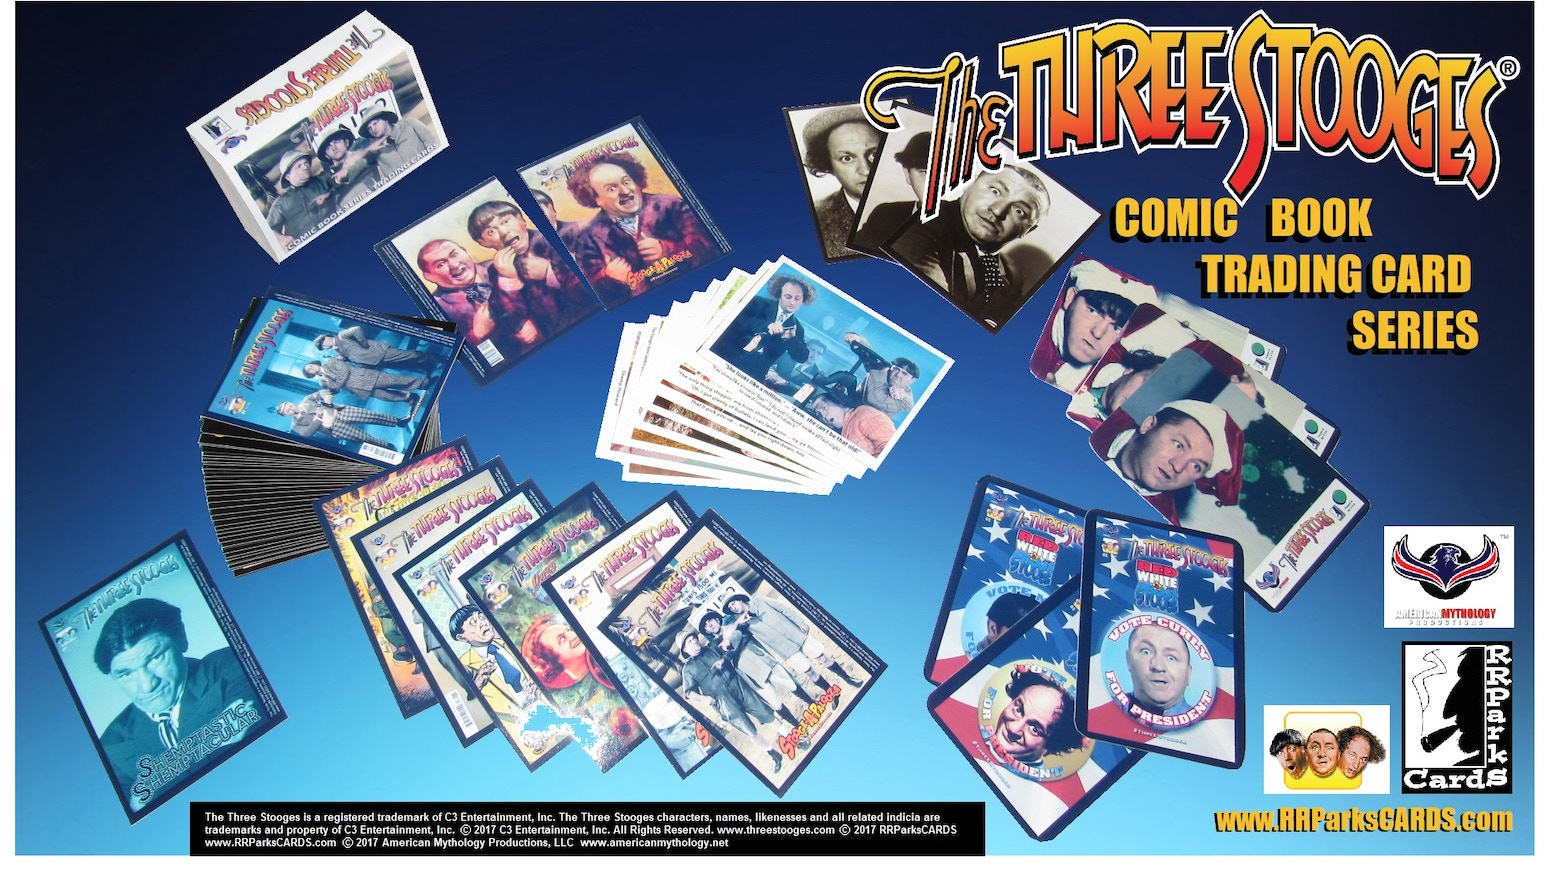 the three stooges comic book trading cards by rrparks. Black Bedroom Furniture Sets. Home Design Ideas